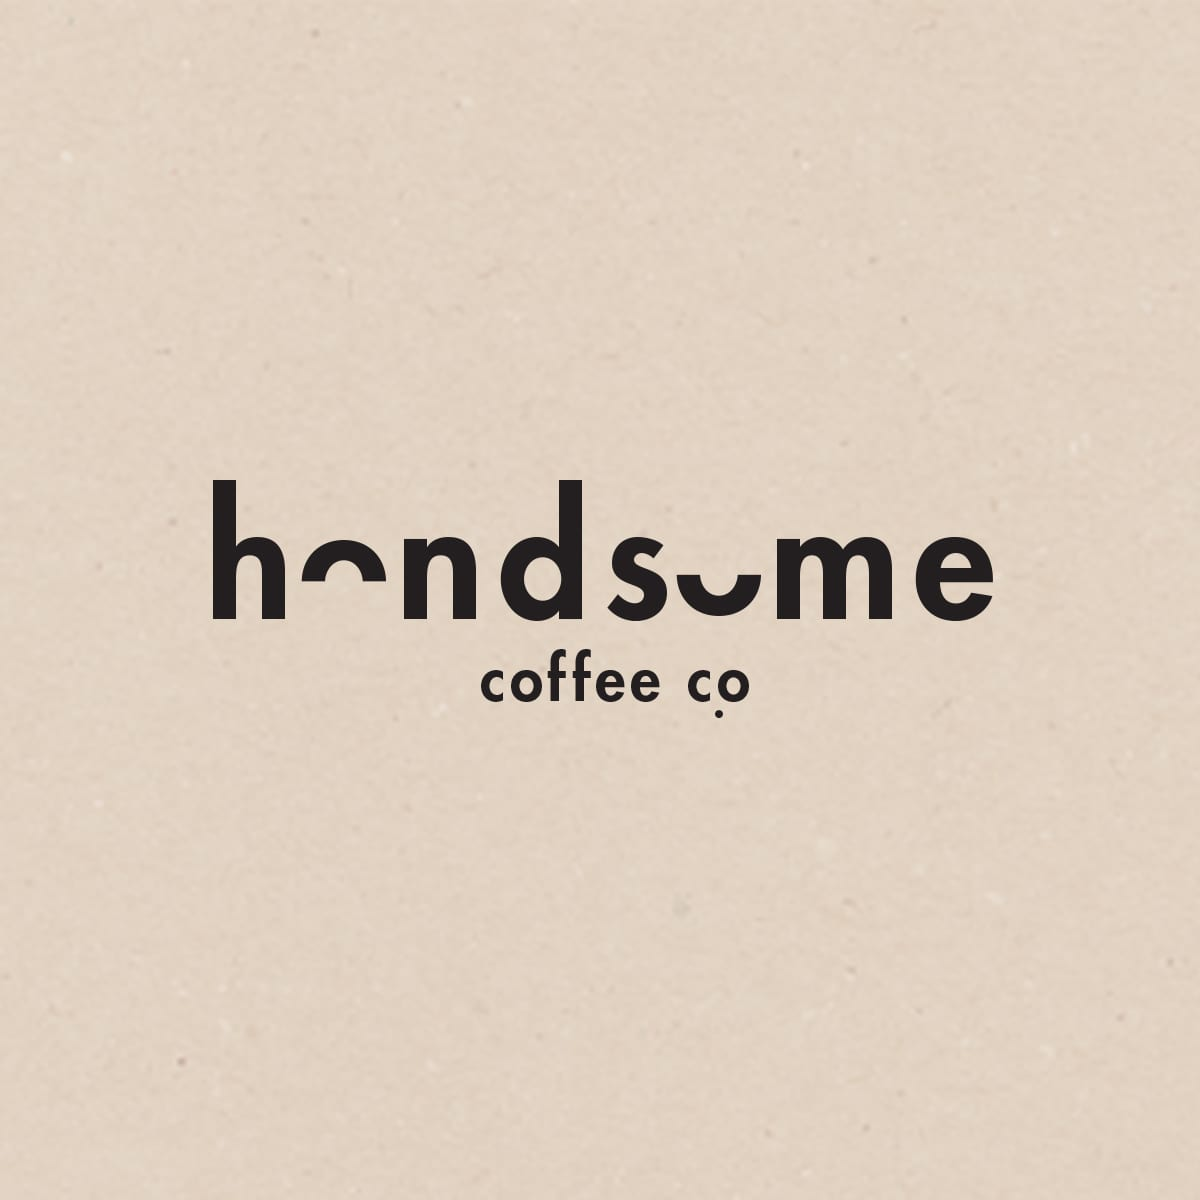 Handsome Coffee Co.